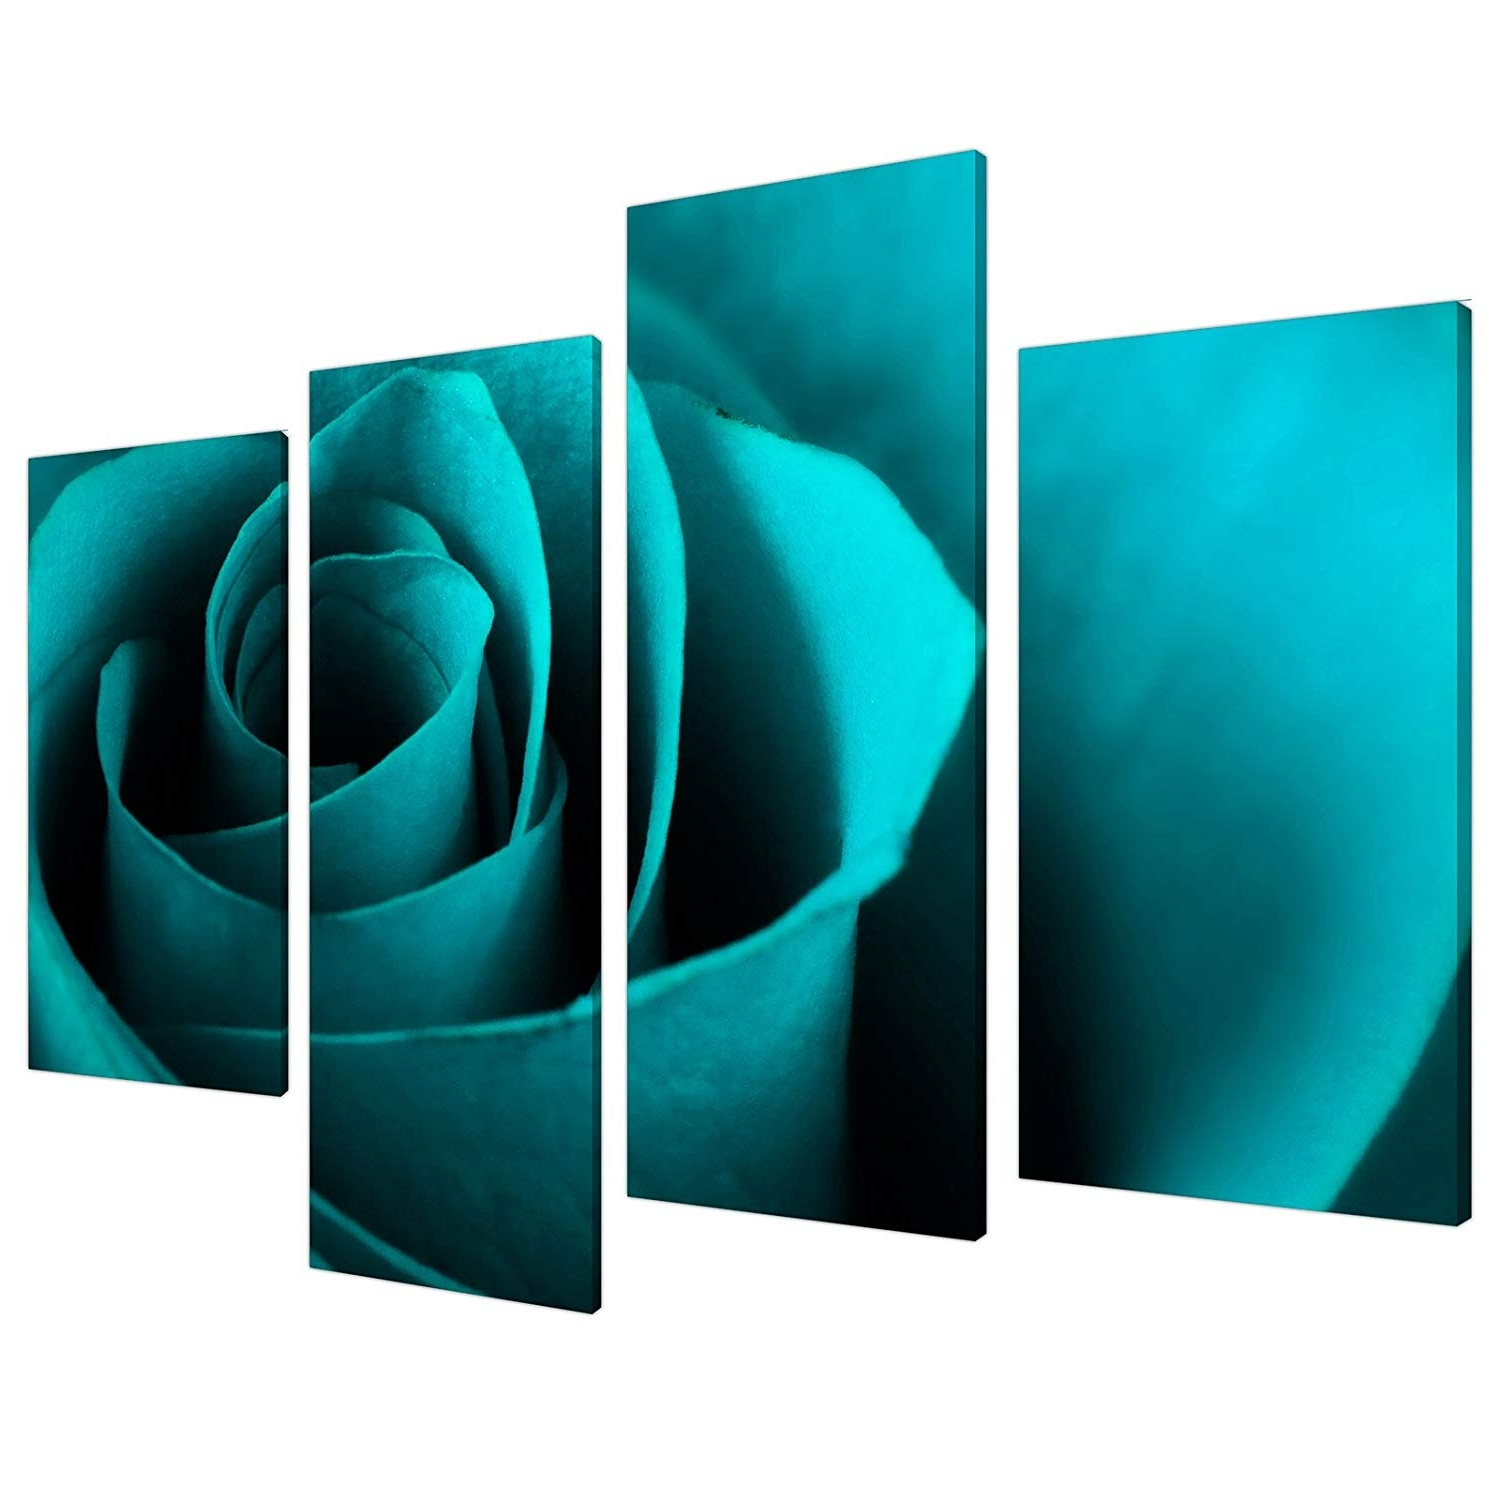 Teal Wall Art In Popular Large Teal Turquoise Floral Canvas Wall Art Pictures Xl Prints  (View 12 of 15)